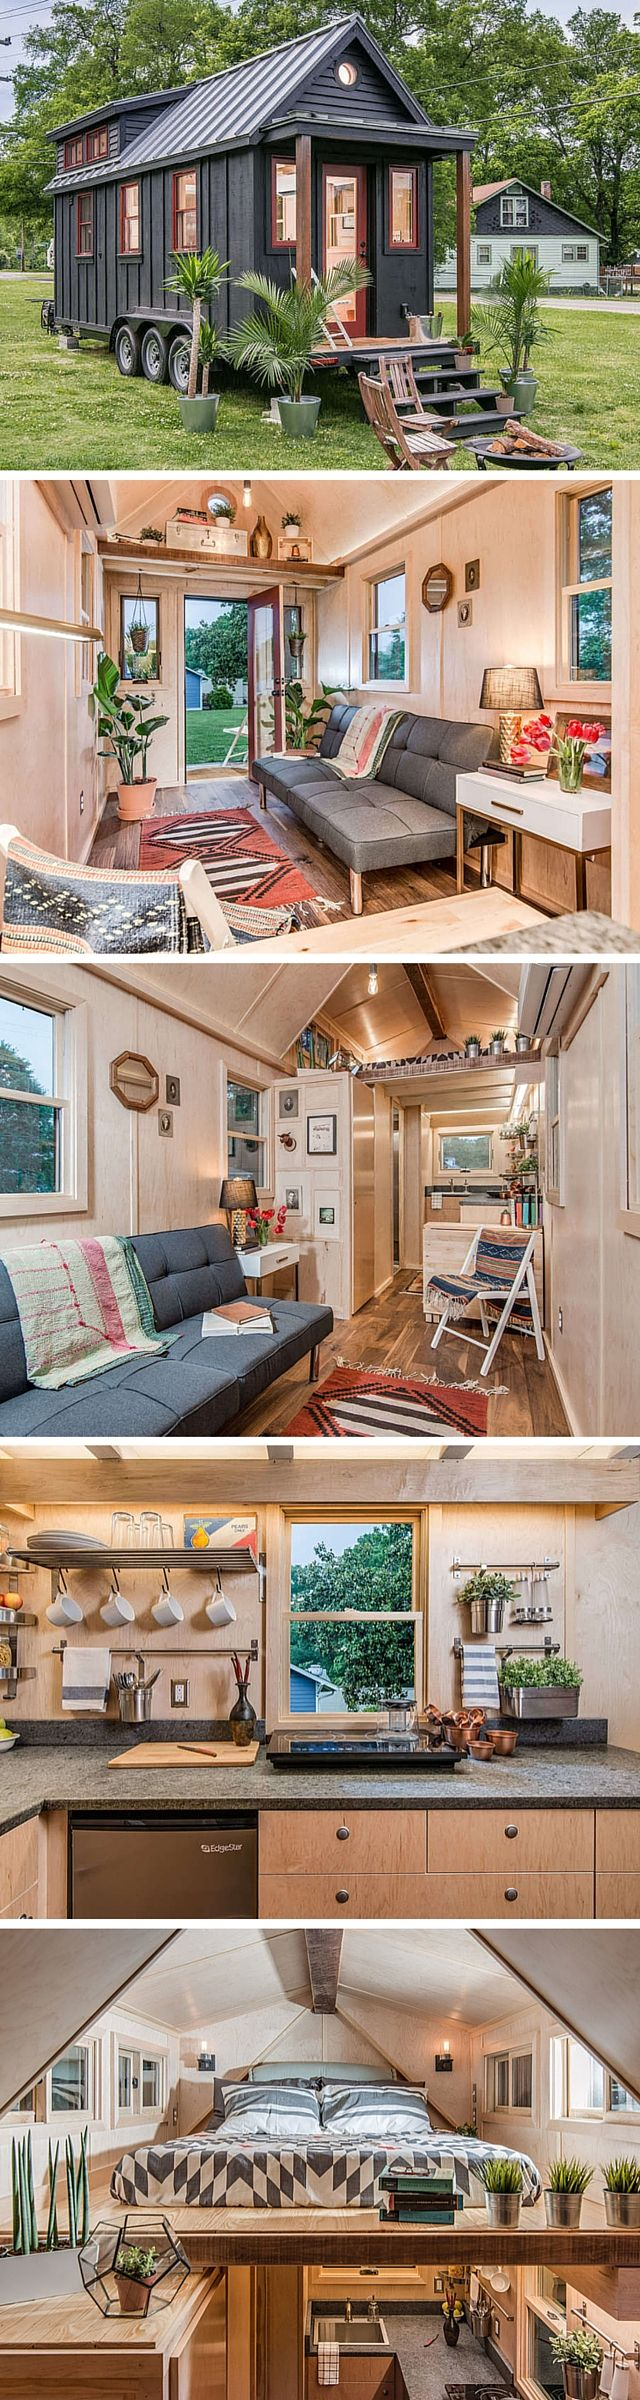 The Riverside tiny house by New Frontier Tiny Homes A 246 sq ft